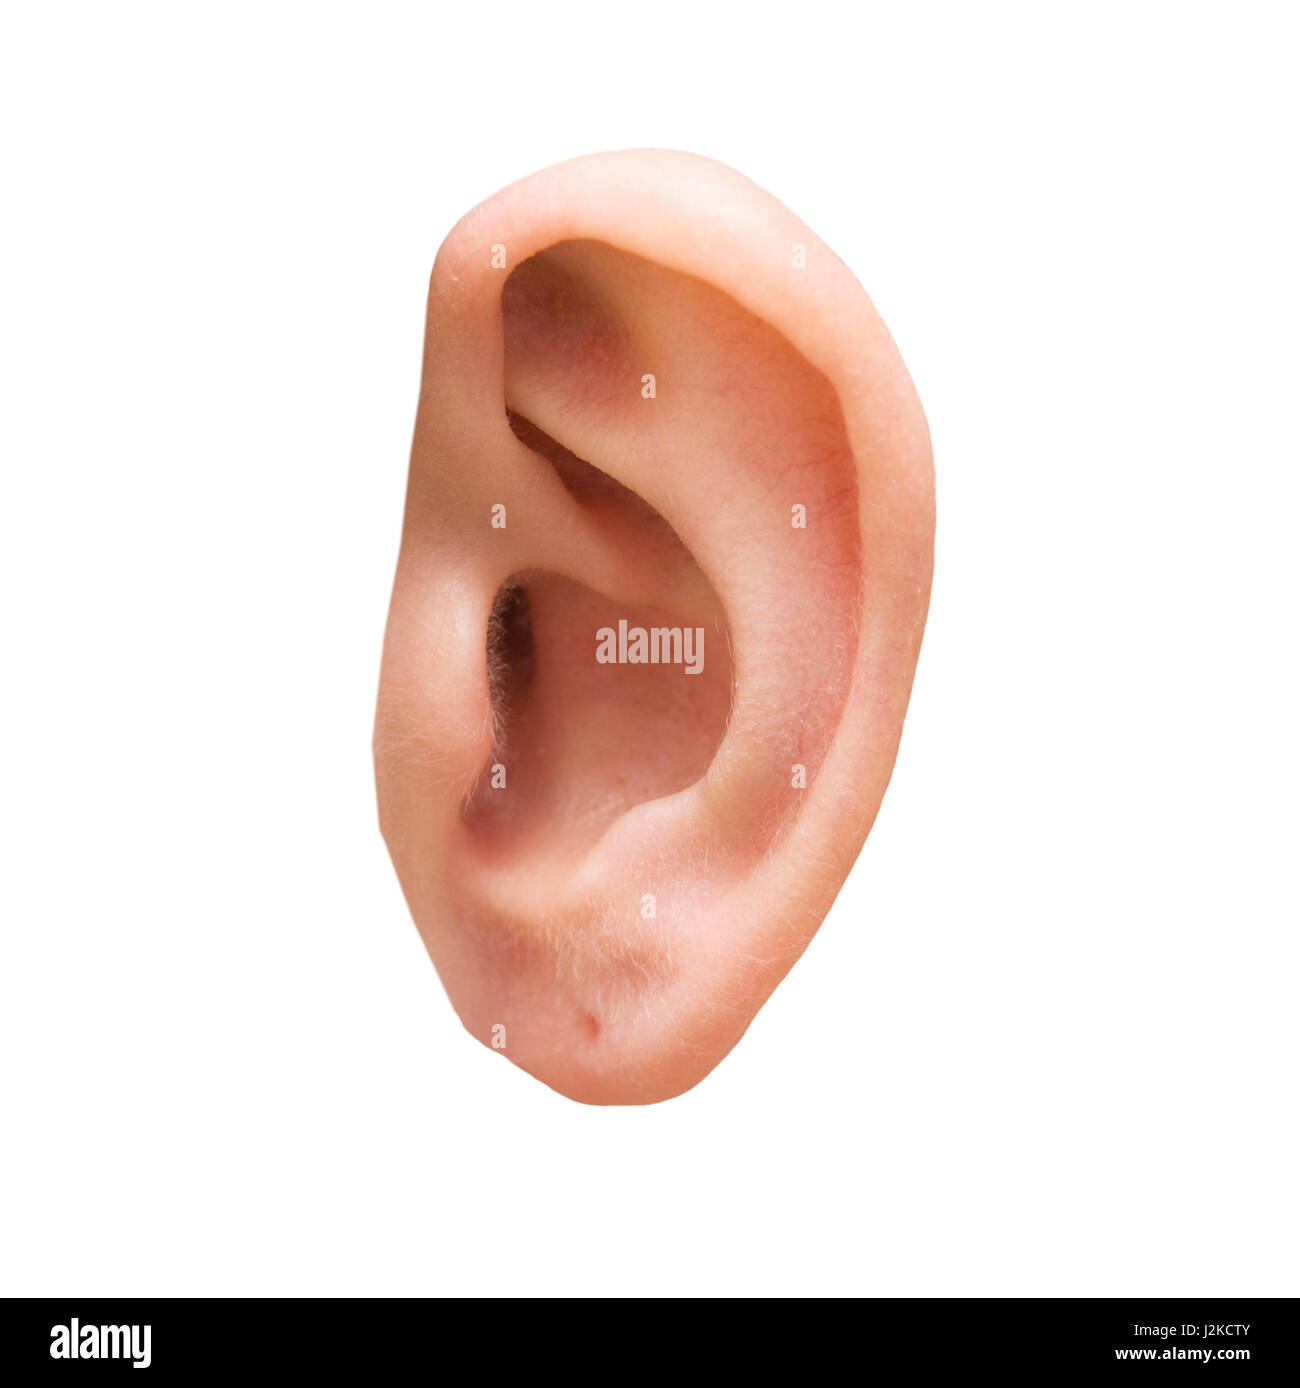 Ear Lobe Cut Out Stock Images & Pictures - Alamy